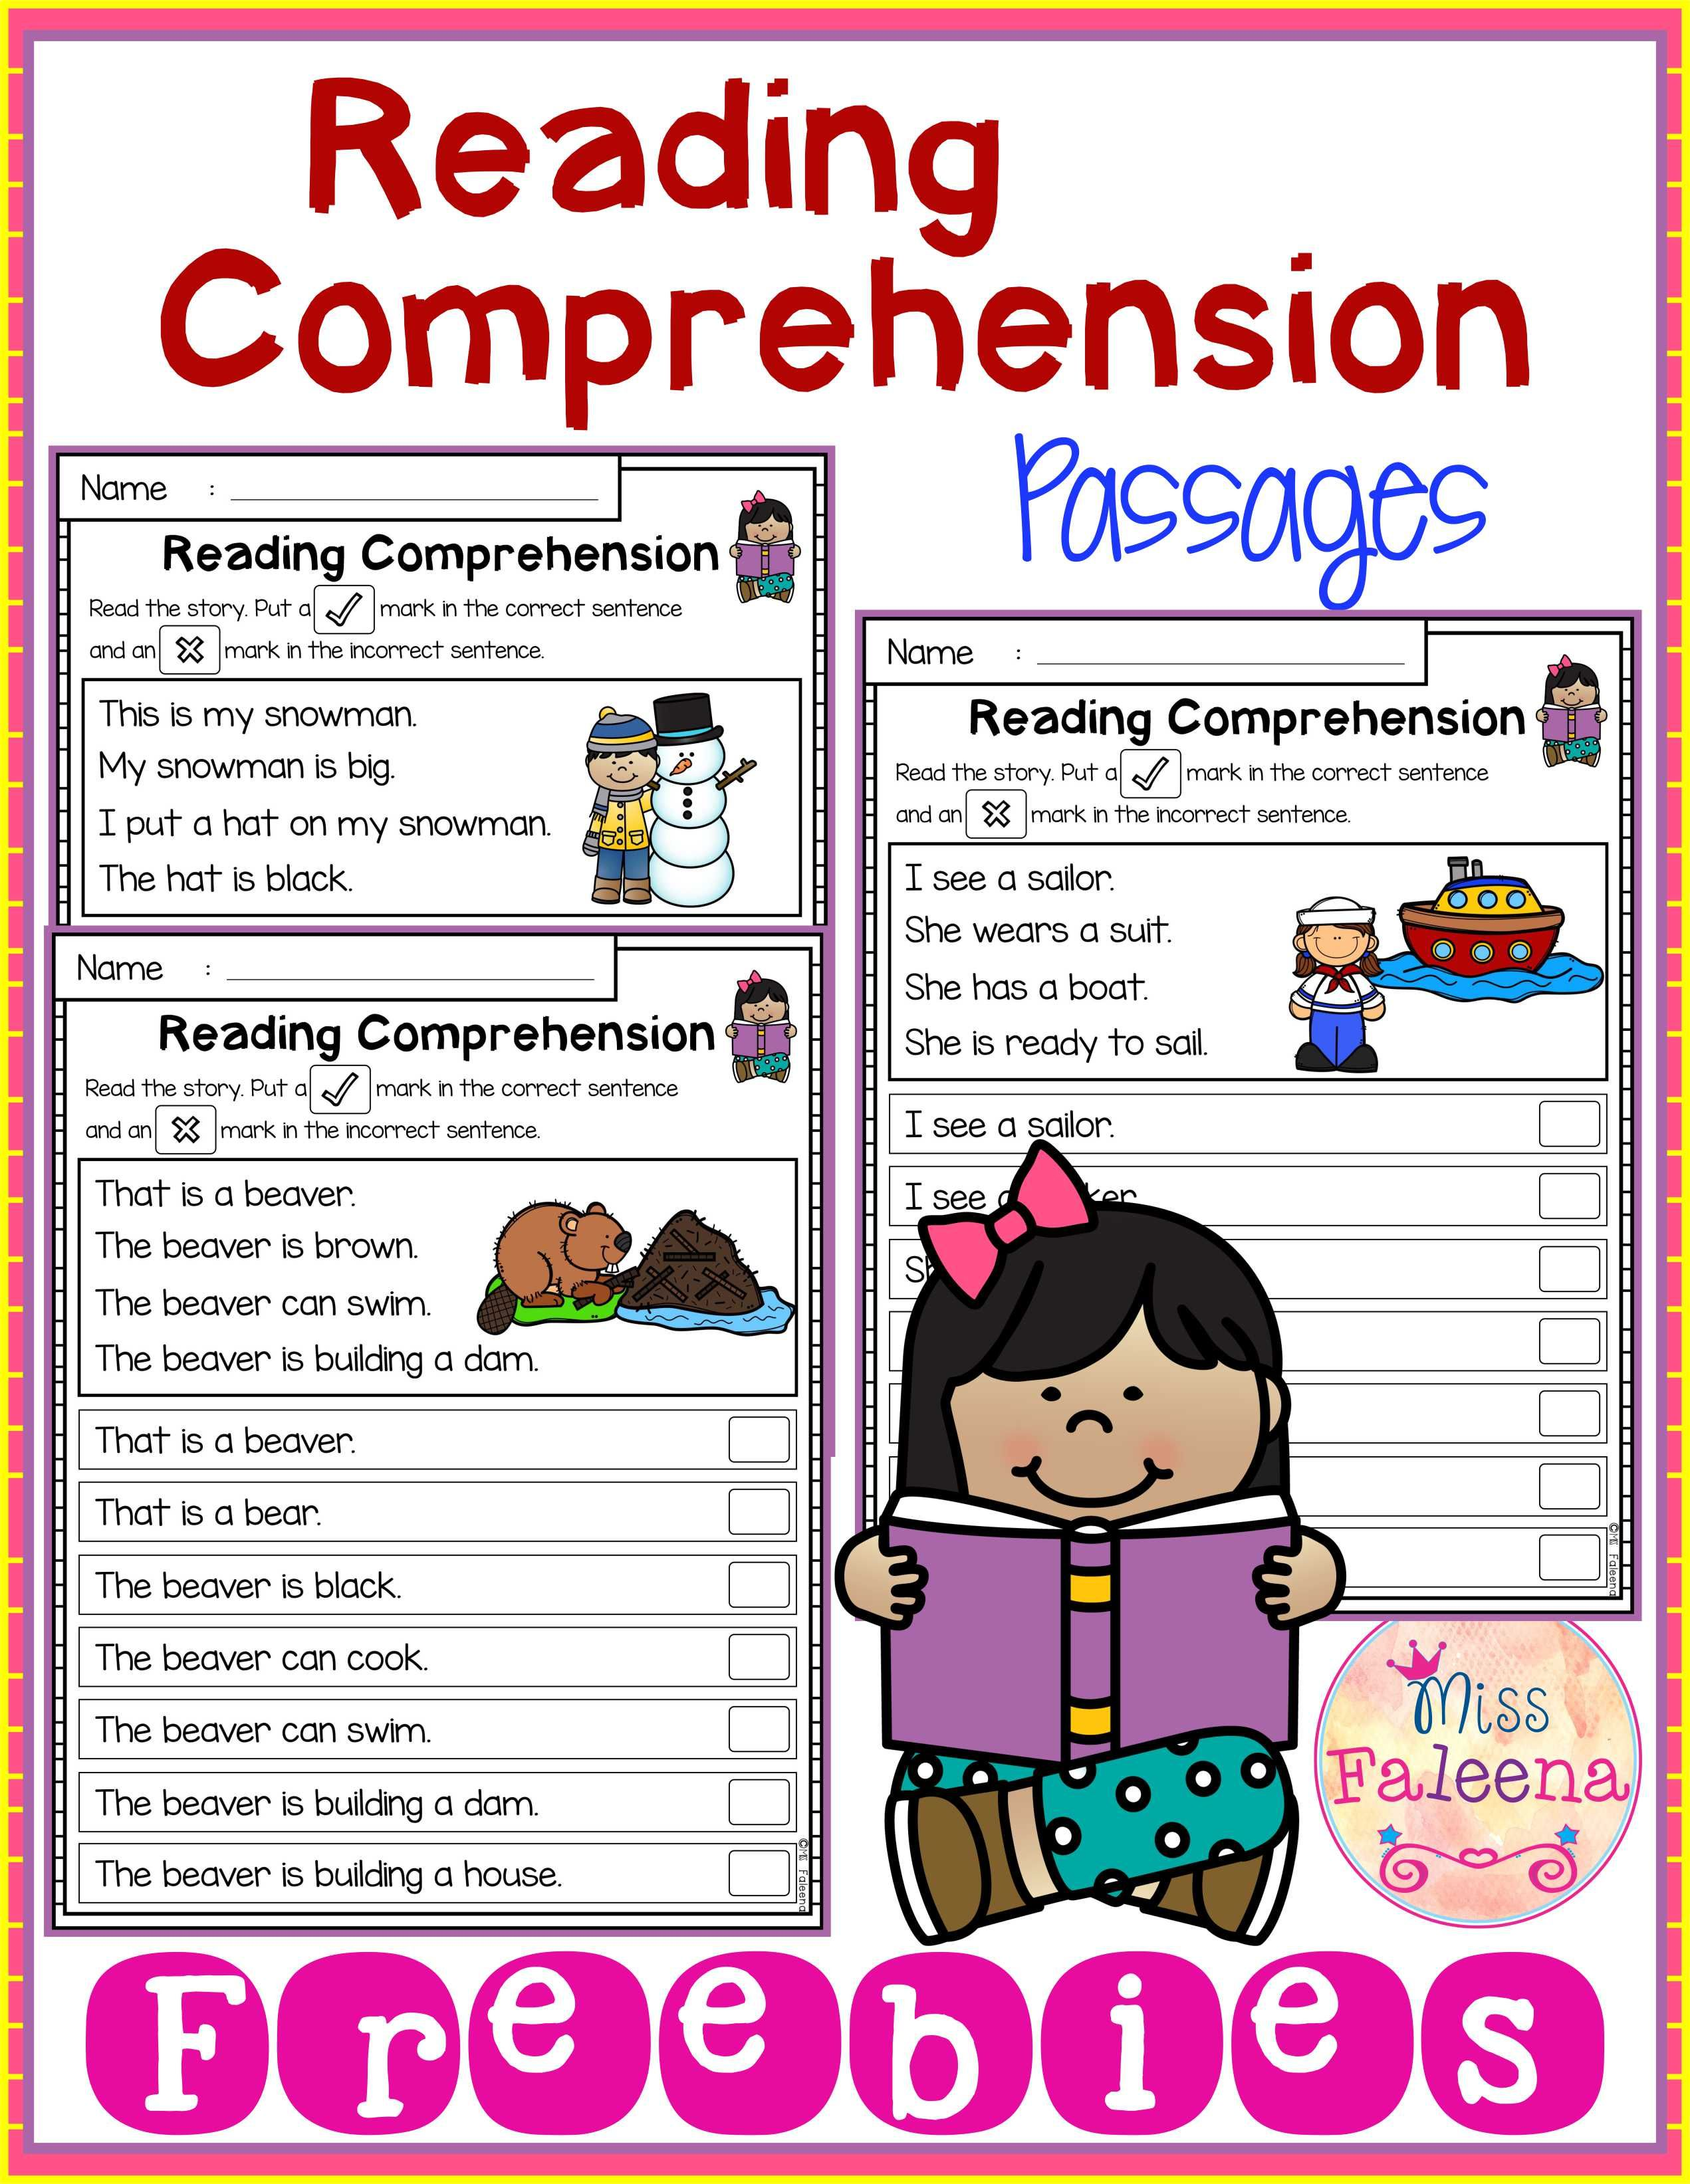 Free Reading Comprehension Passages Reading Comprehension Passages Comprehension Passage Reading Comprehension Passages Free [ 3286 x 2542 Pixel ]